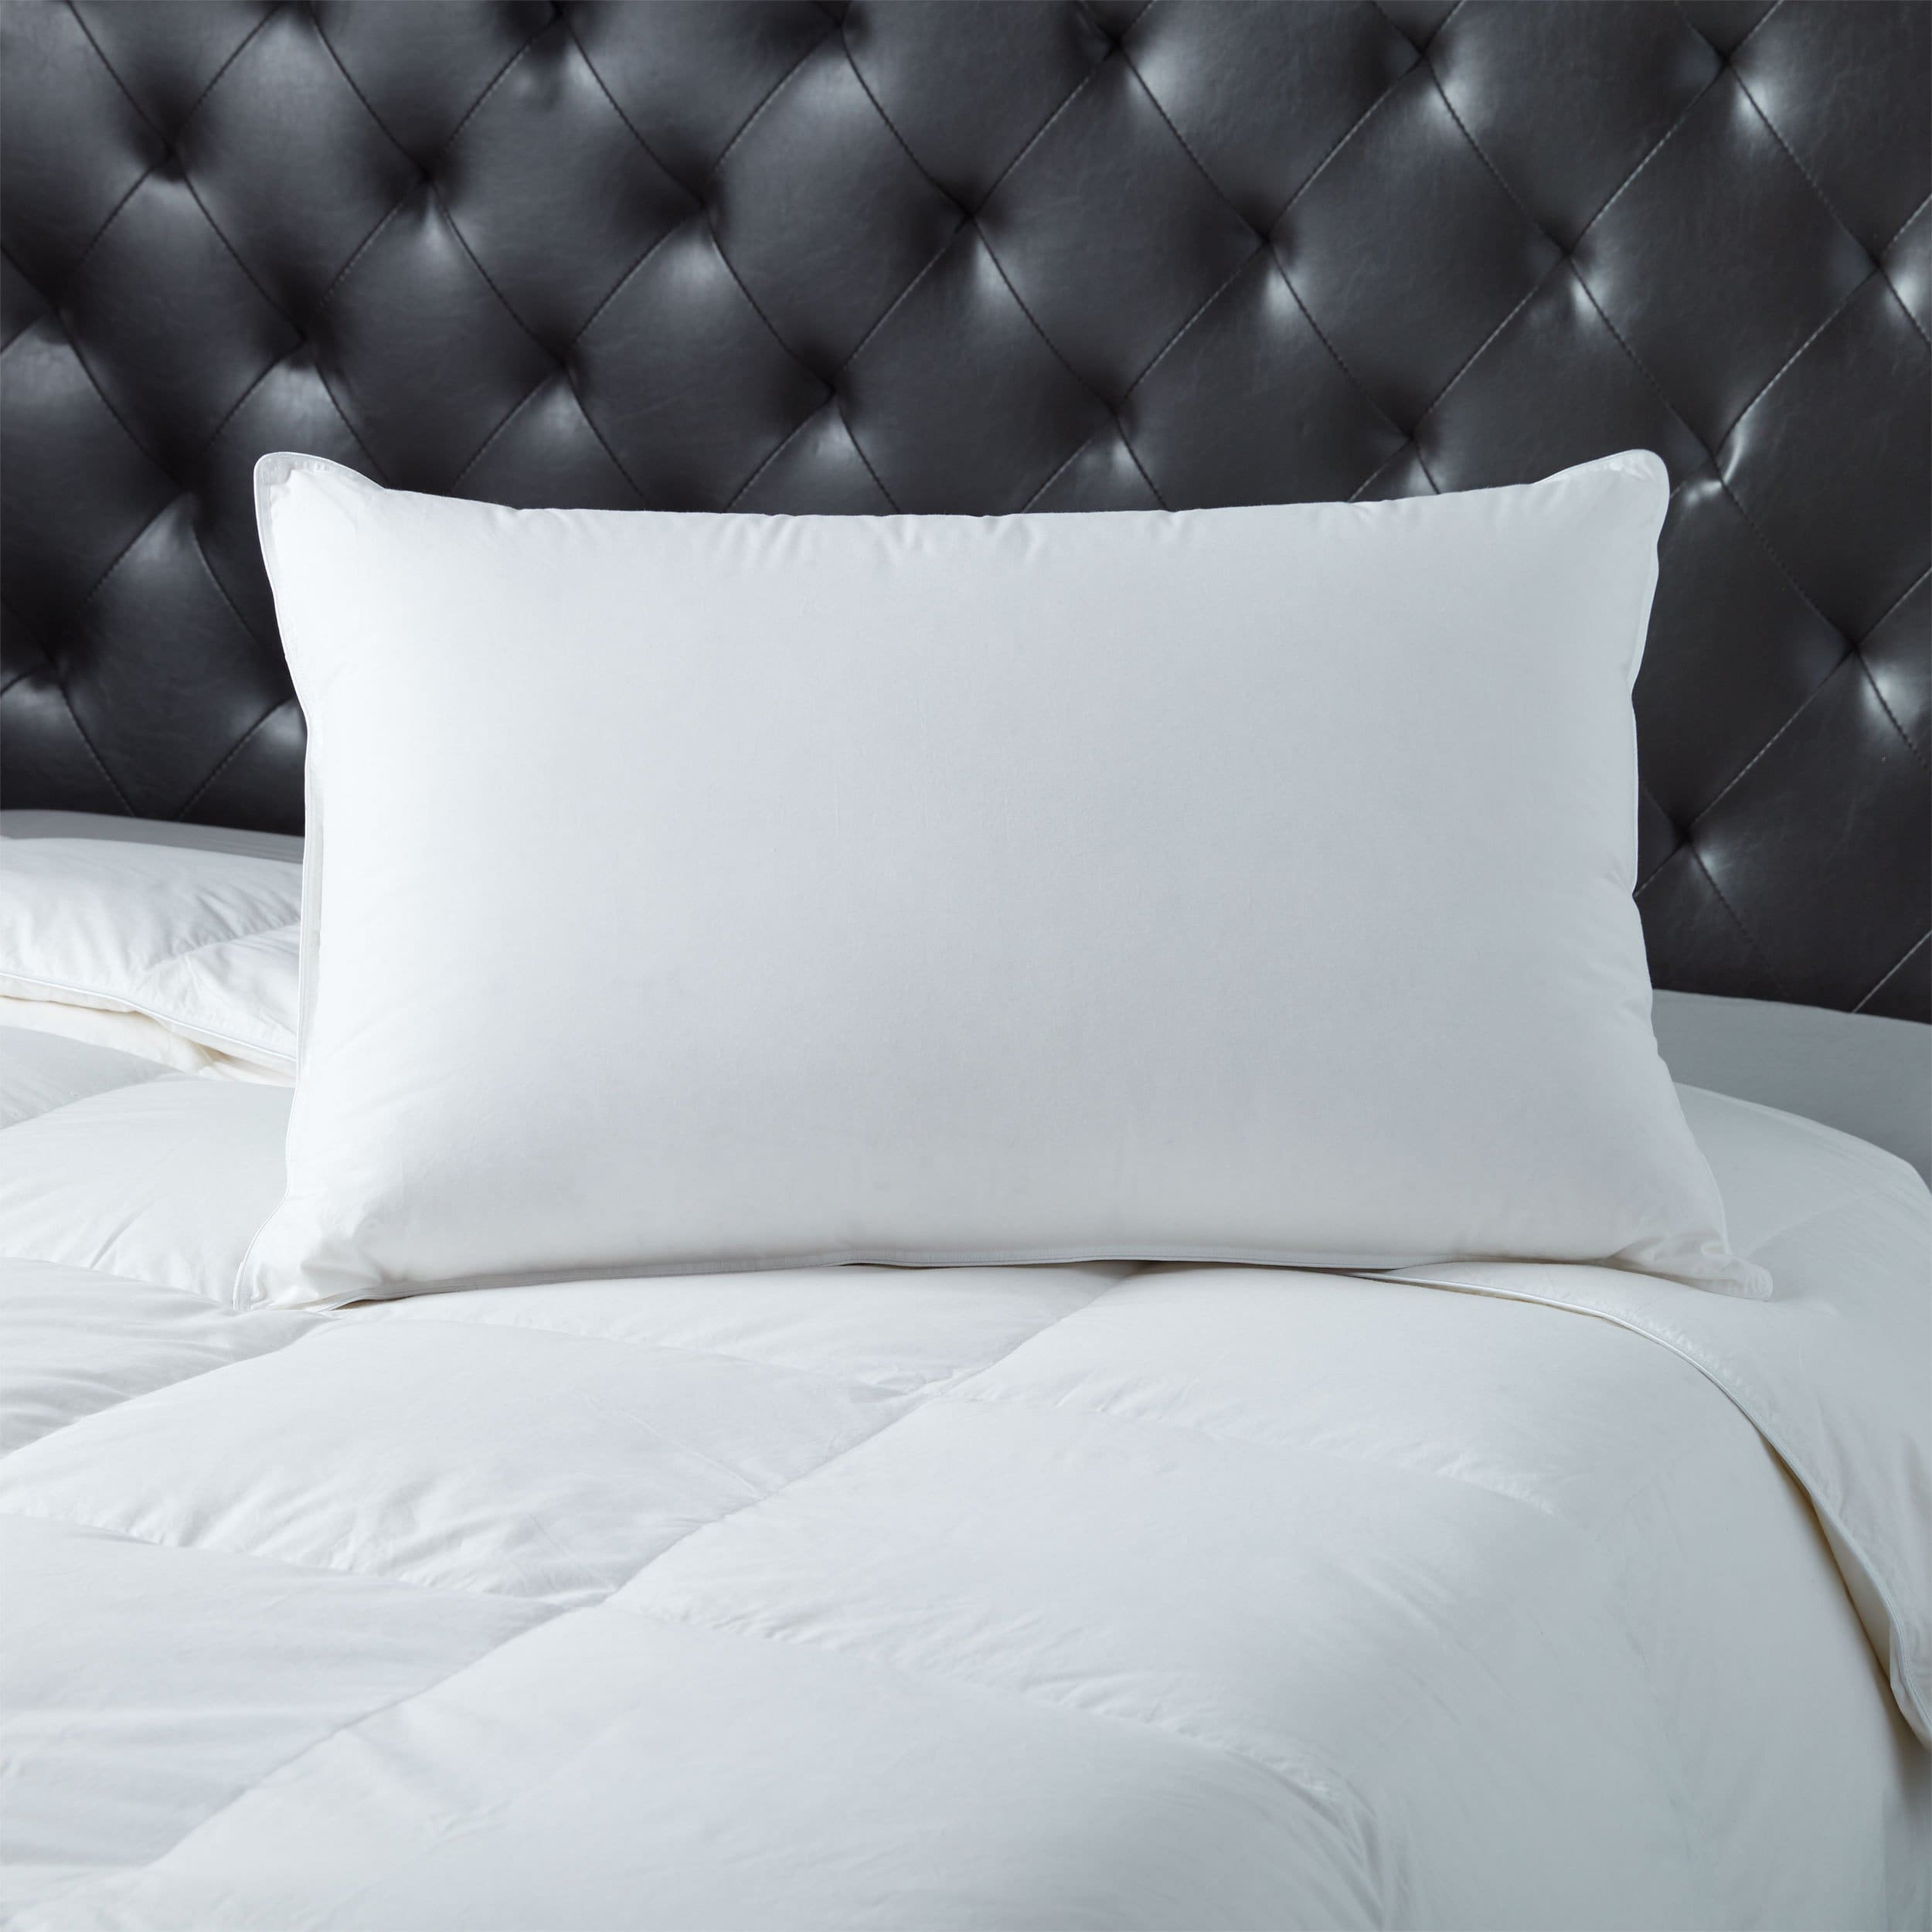 European Heritage  Cologne Firm Hypoallergenic Tencel Hungarian White Goose Down Pillow